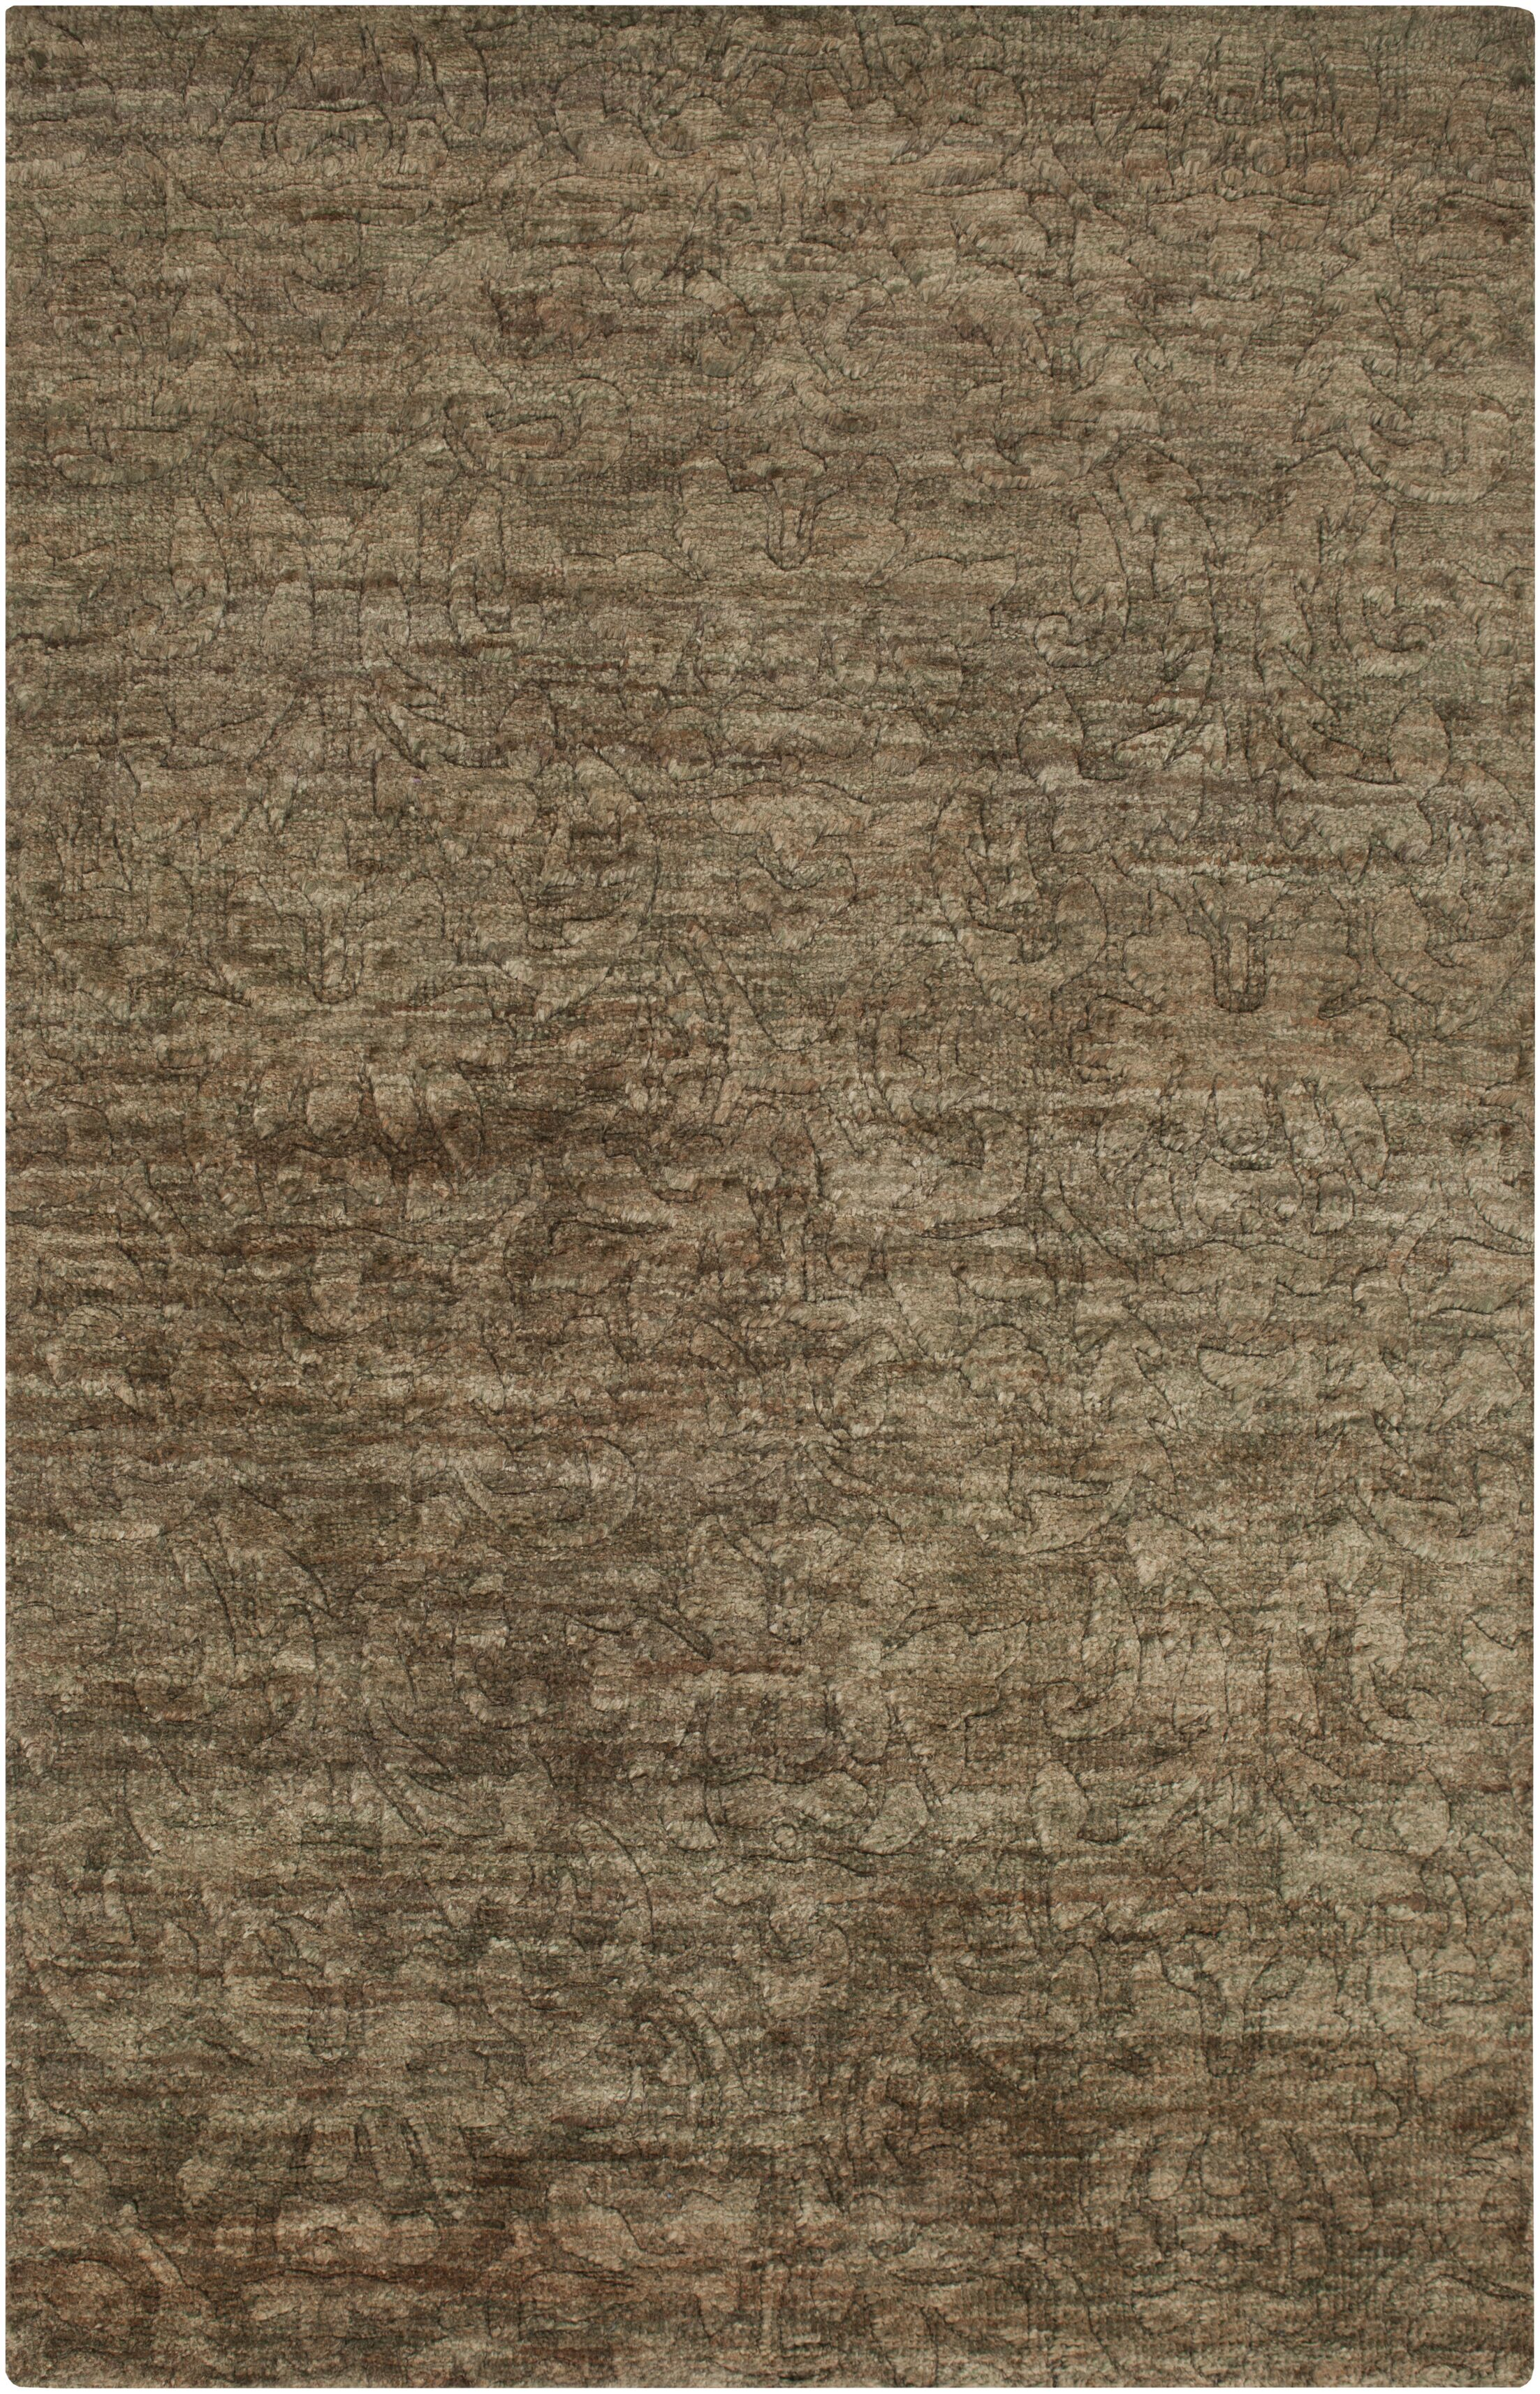 Limewood Tan Rug Rug Size: Rectangle 8' x 11'